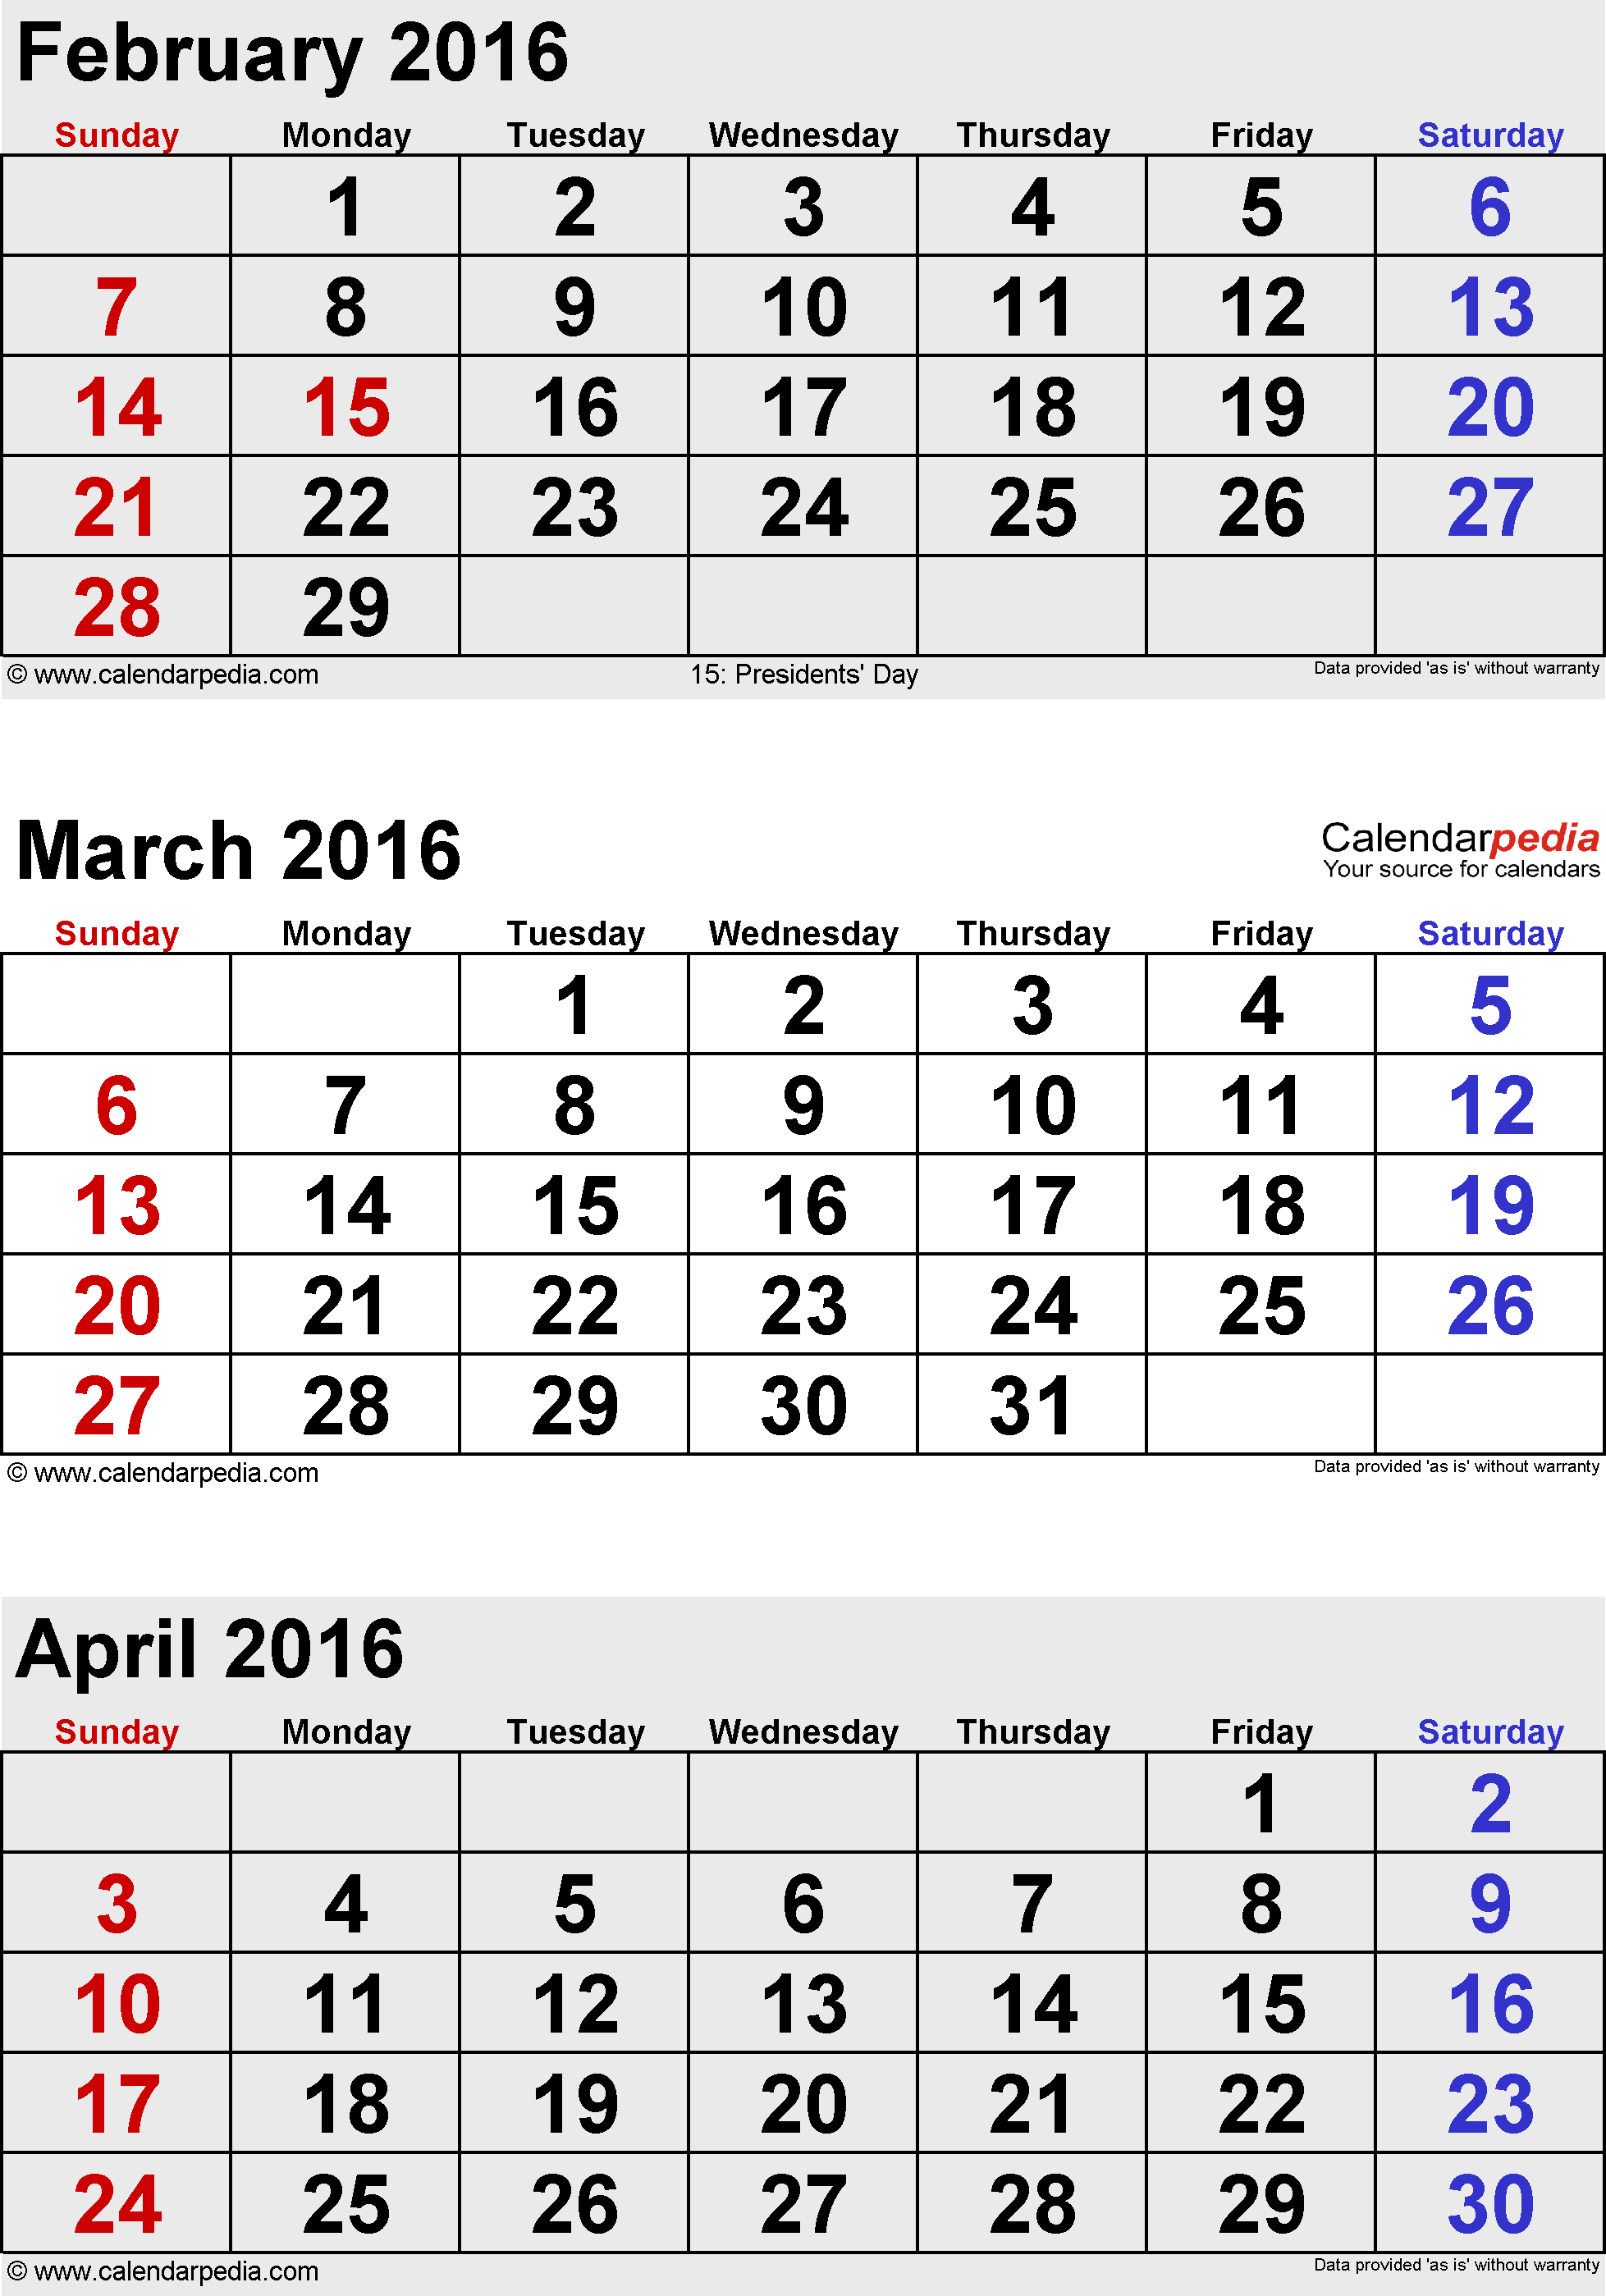 3 months calendar March/April/May 2016 in portrait format